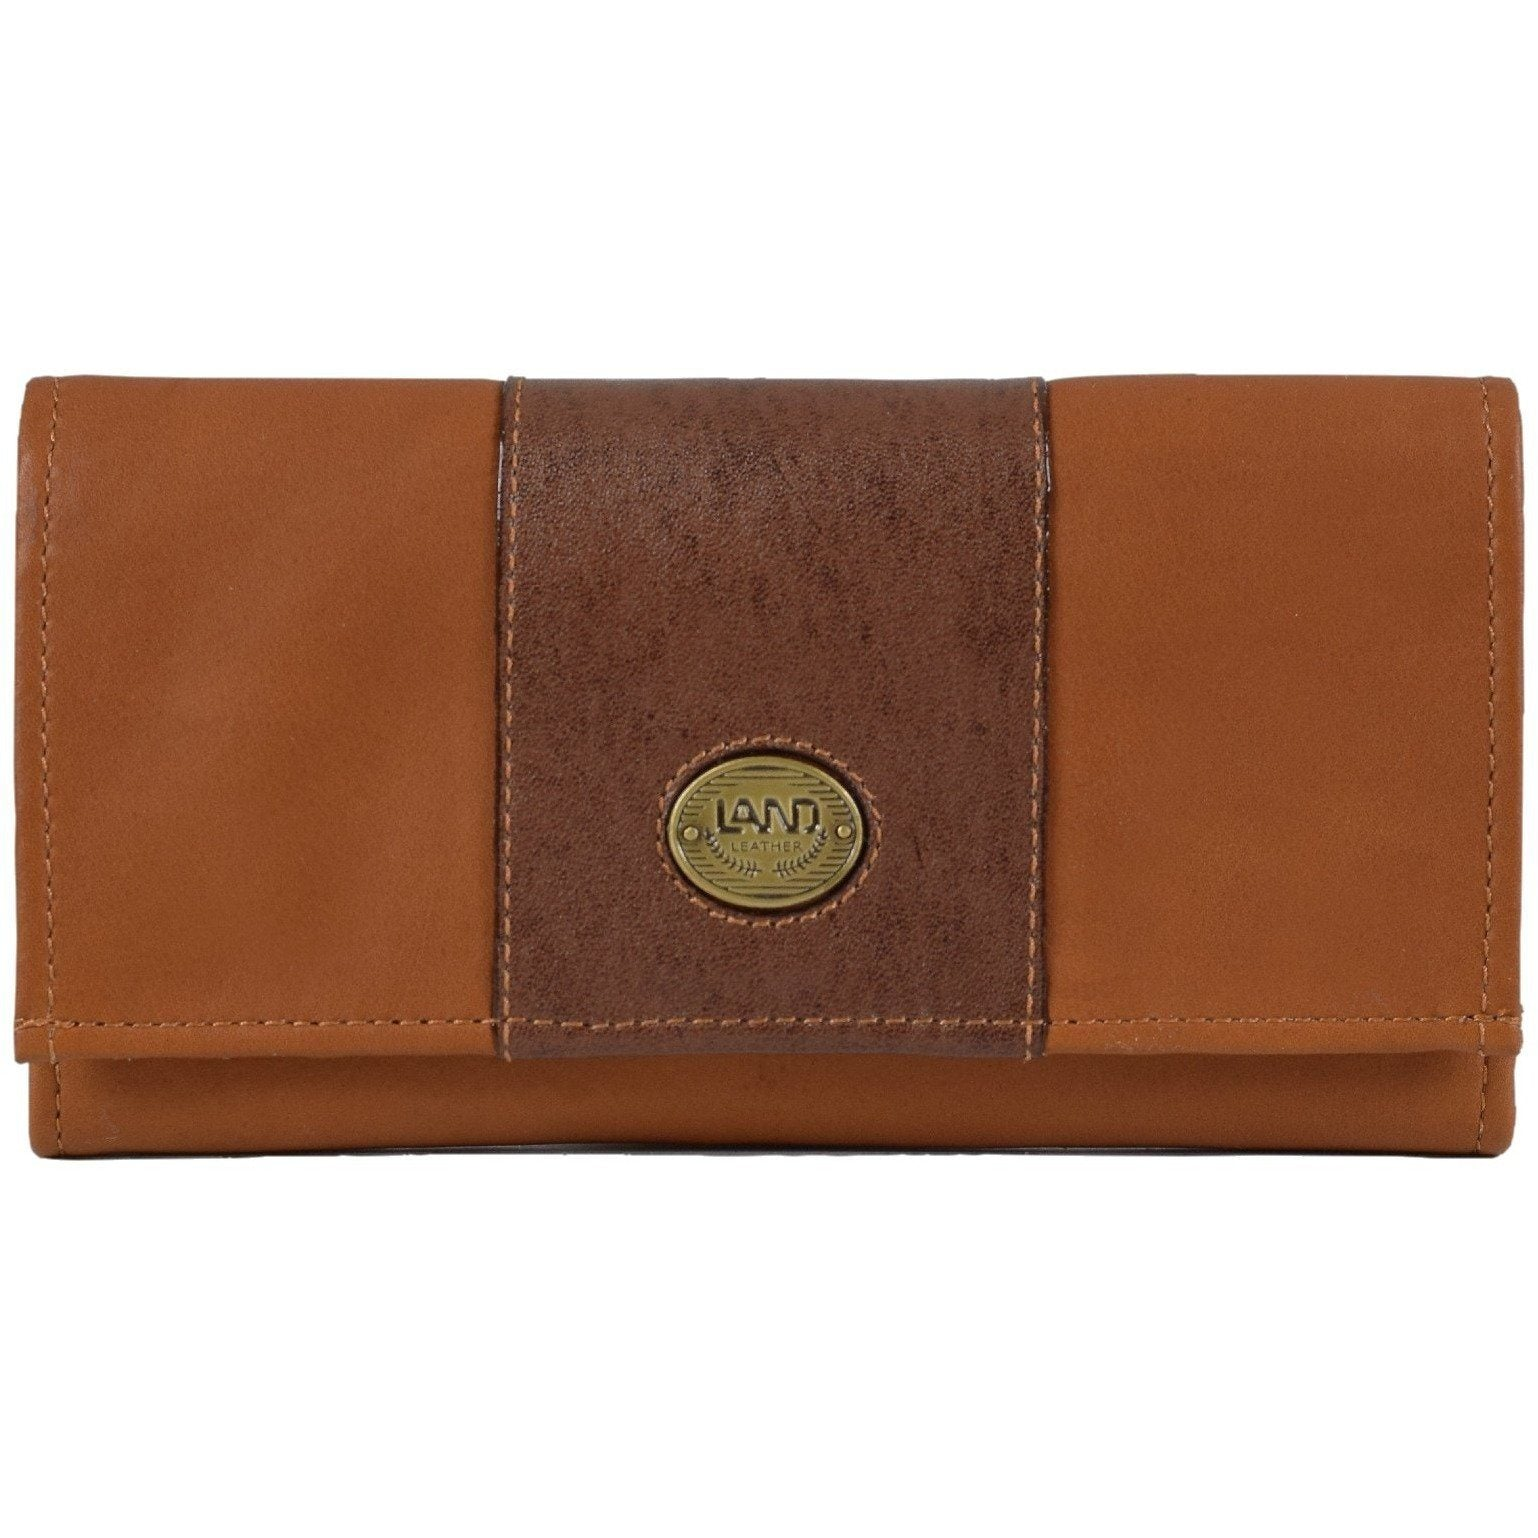 Santa Fe Ladies Checkbook Organizer, Wallet | LAND Leather